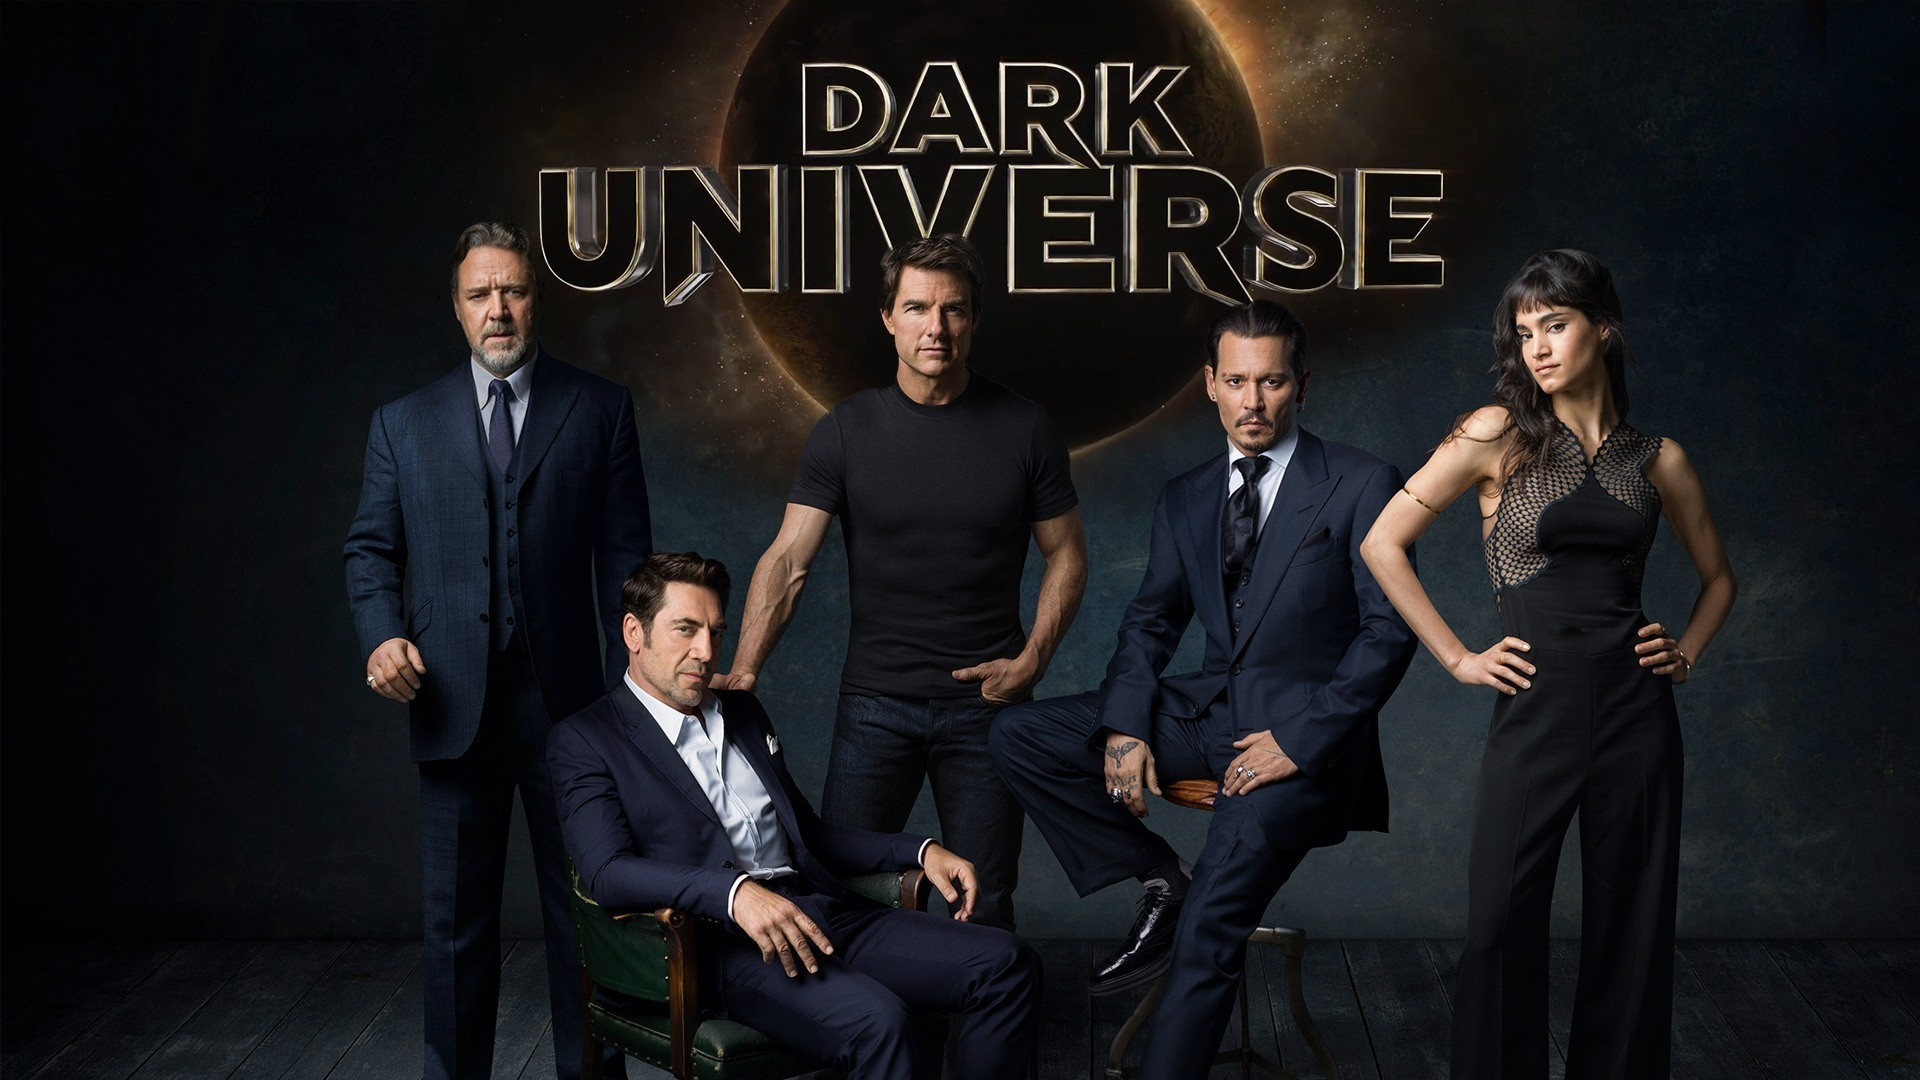 Dark Universe announced as Universal Monsters shared universe: Depp,  Bardem, Condon and Elfman confirmed – Movies